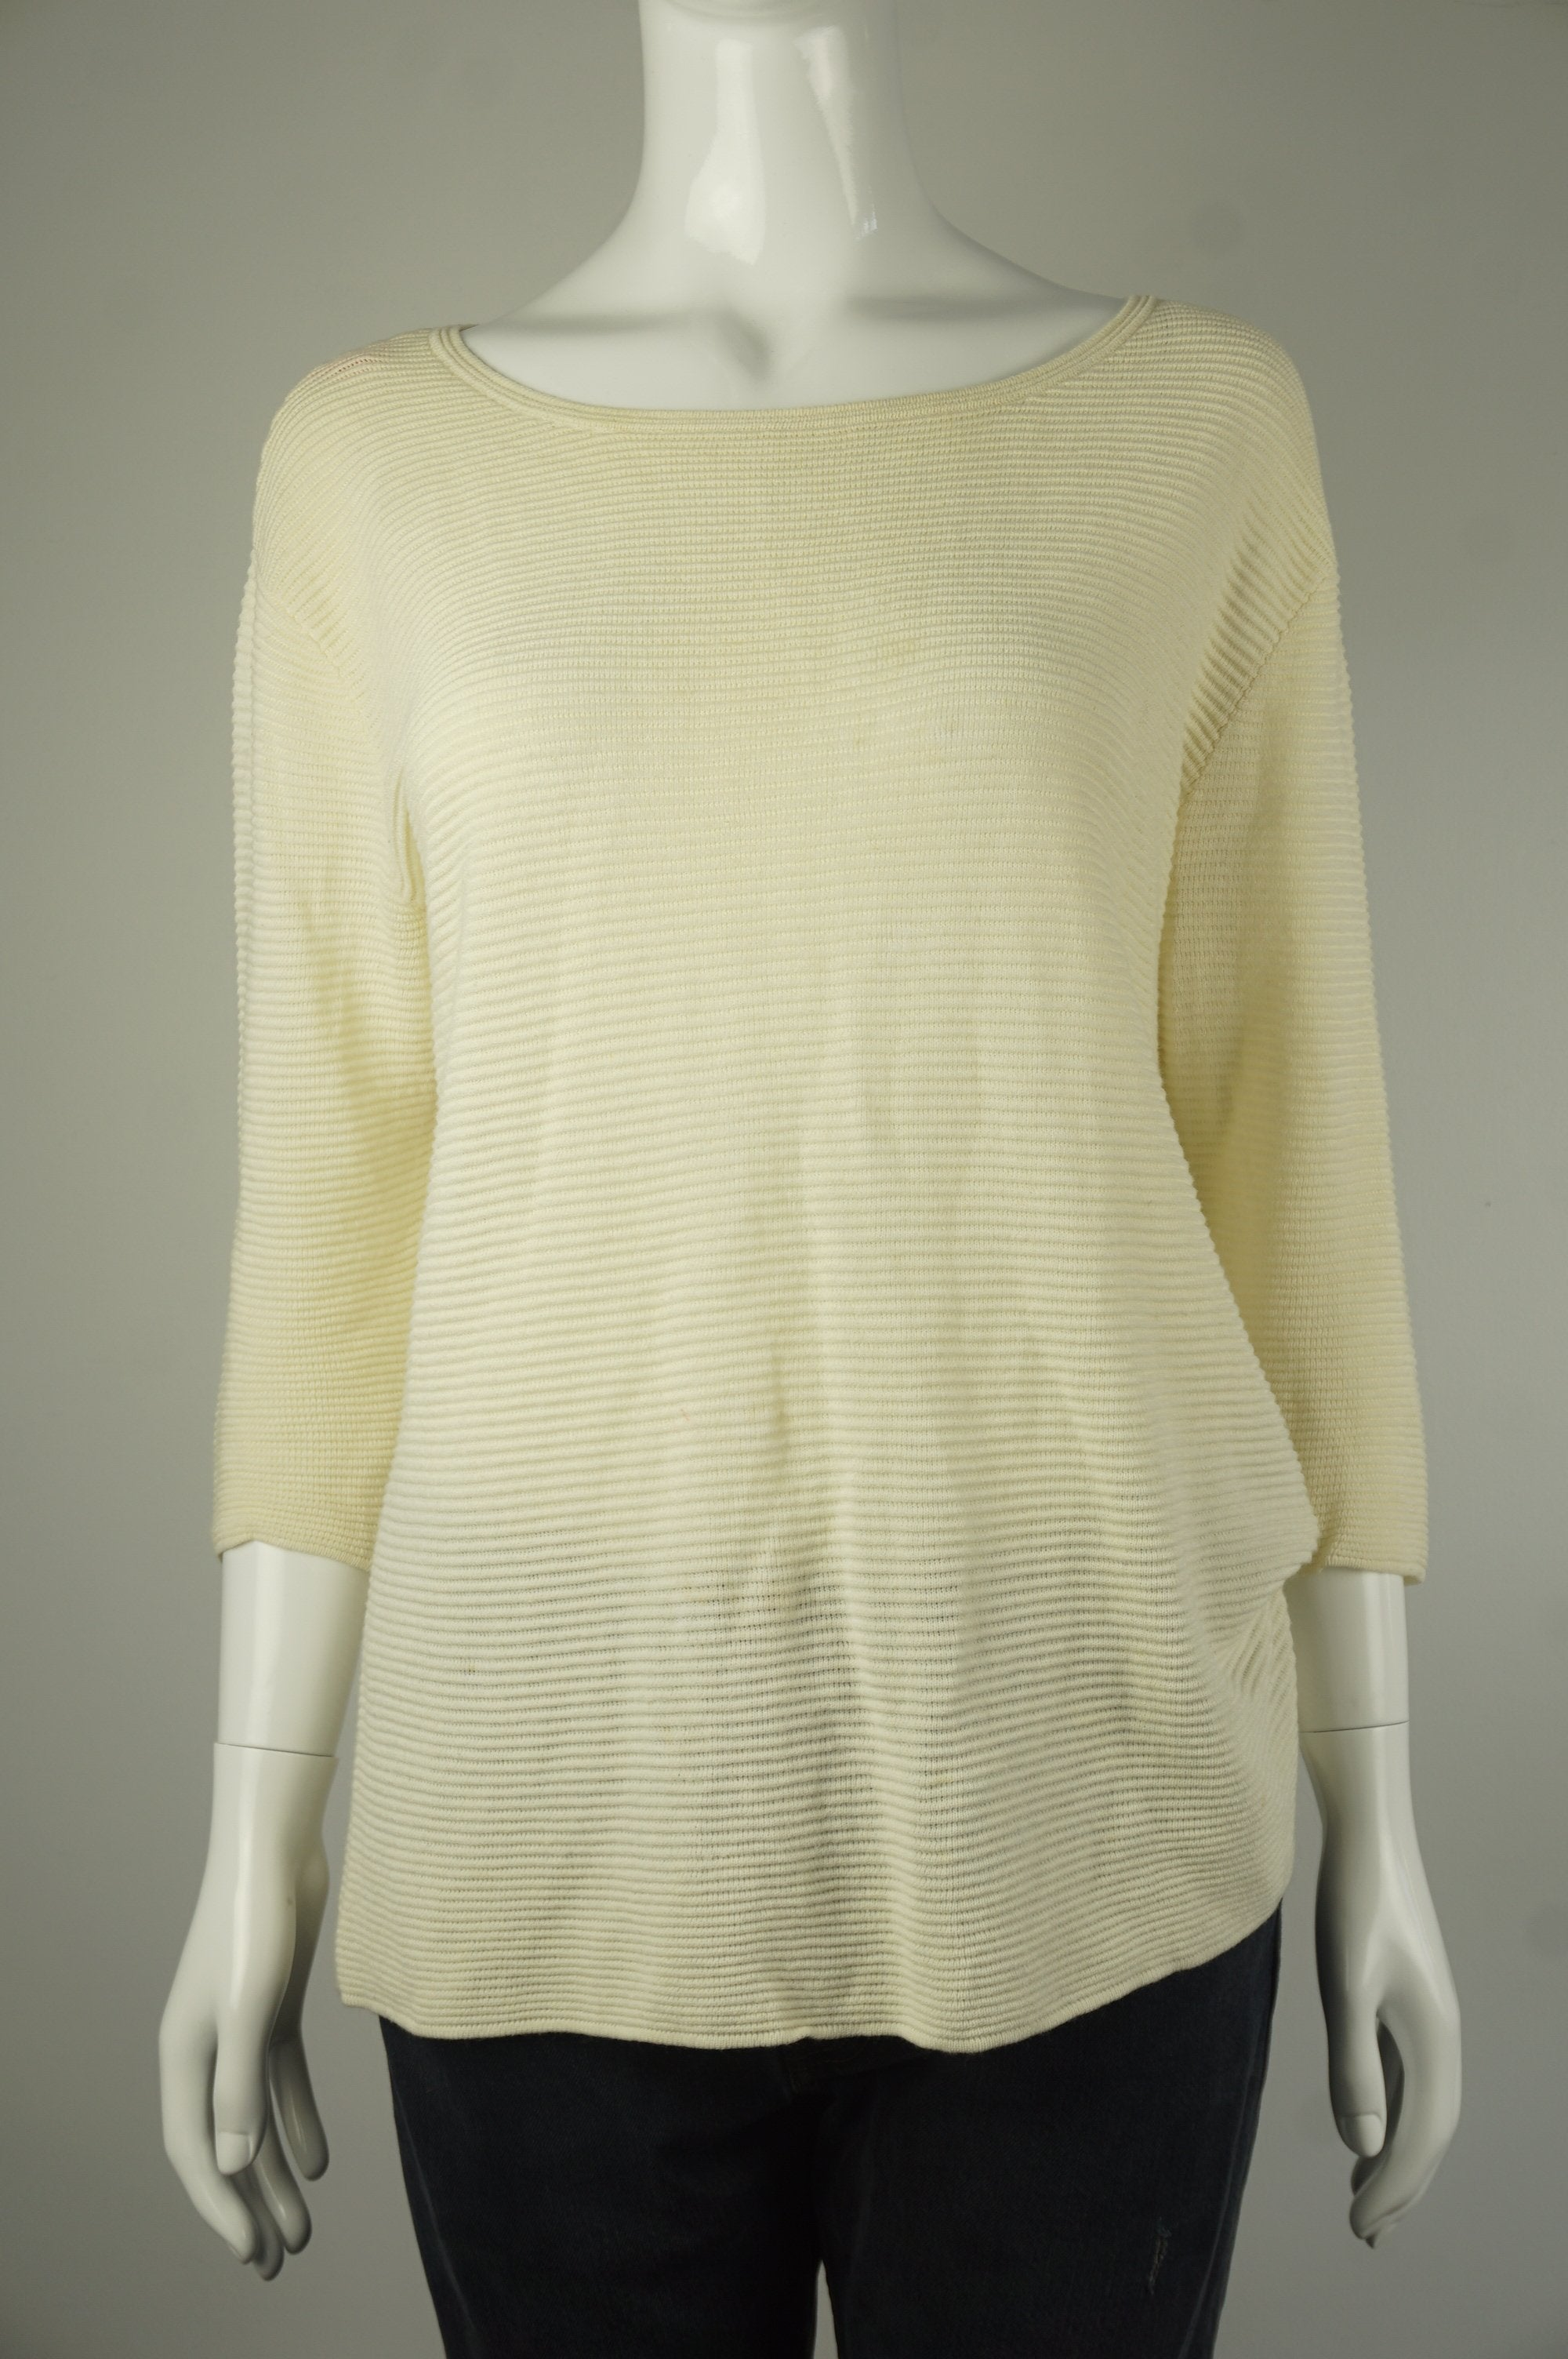 Wilfred Pullover Beige Sweater, Relaxed fitting with dropped shoulders. Drapey fabric., Yellow, 68% viscose, 20% linen, 12% nylon, women's Tops, women's Yellow Tops, Wilfred women's Tops, wilfred loose sweater with high neck, arizia women's loose sweater turtle neck, women's sweater, arizia women's pullover sweater